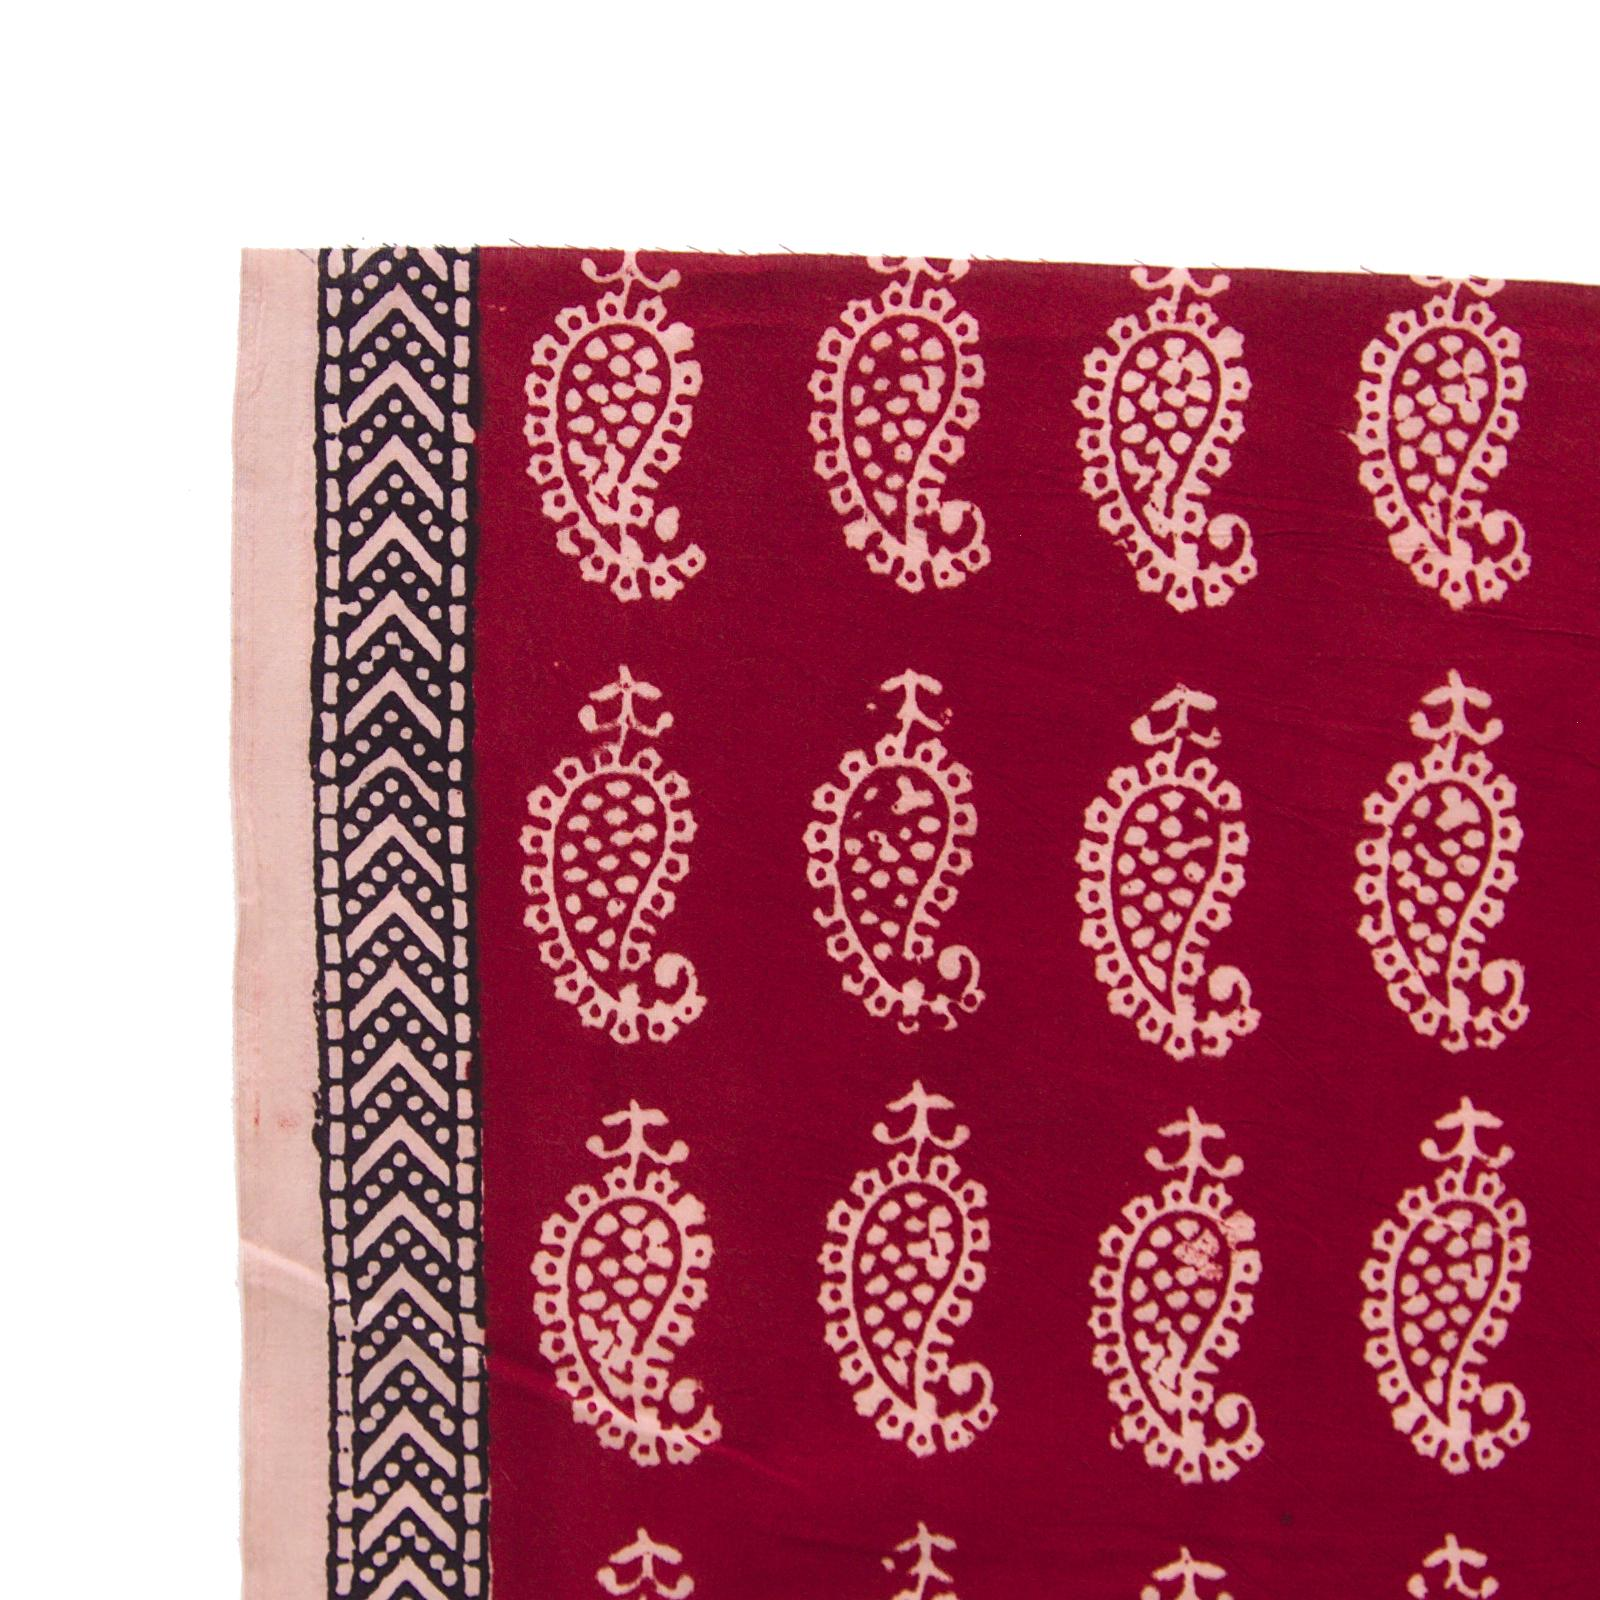 100% Block-Printed Cotton Fabric From India - Raindrops Design - Iron Rust Black & Alizarin Red Dyes - Border - Live